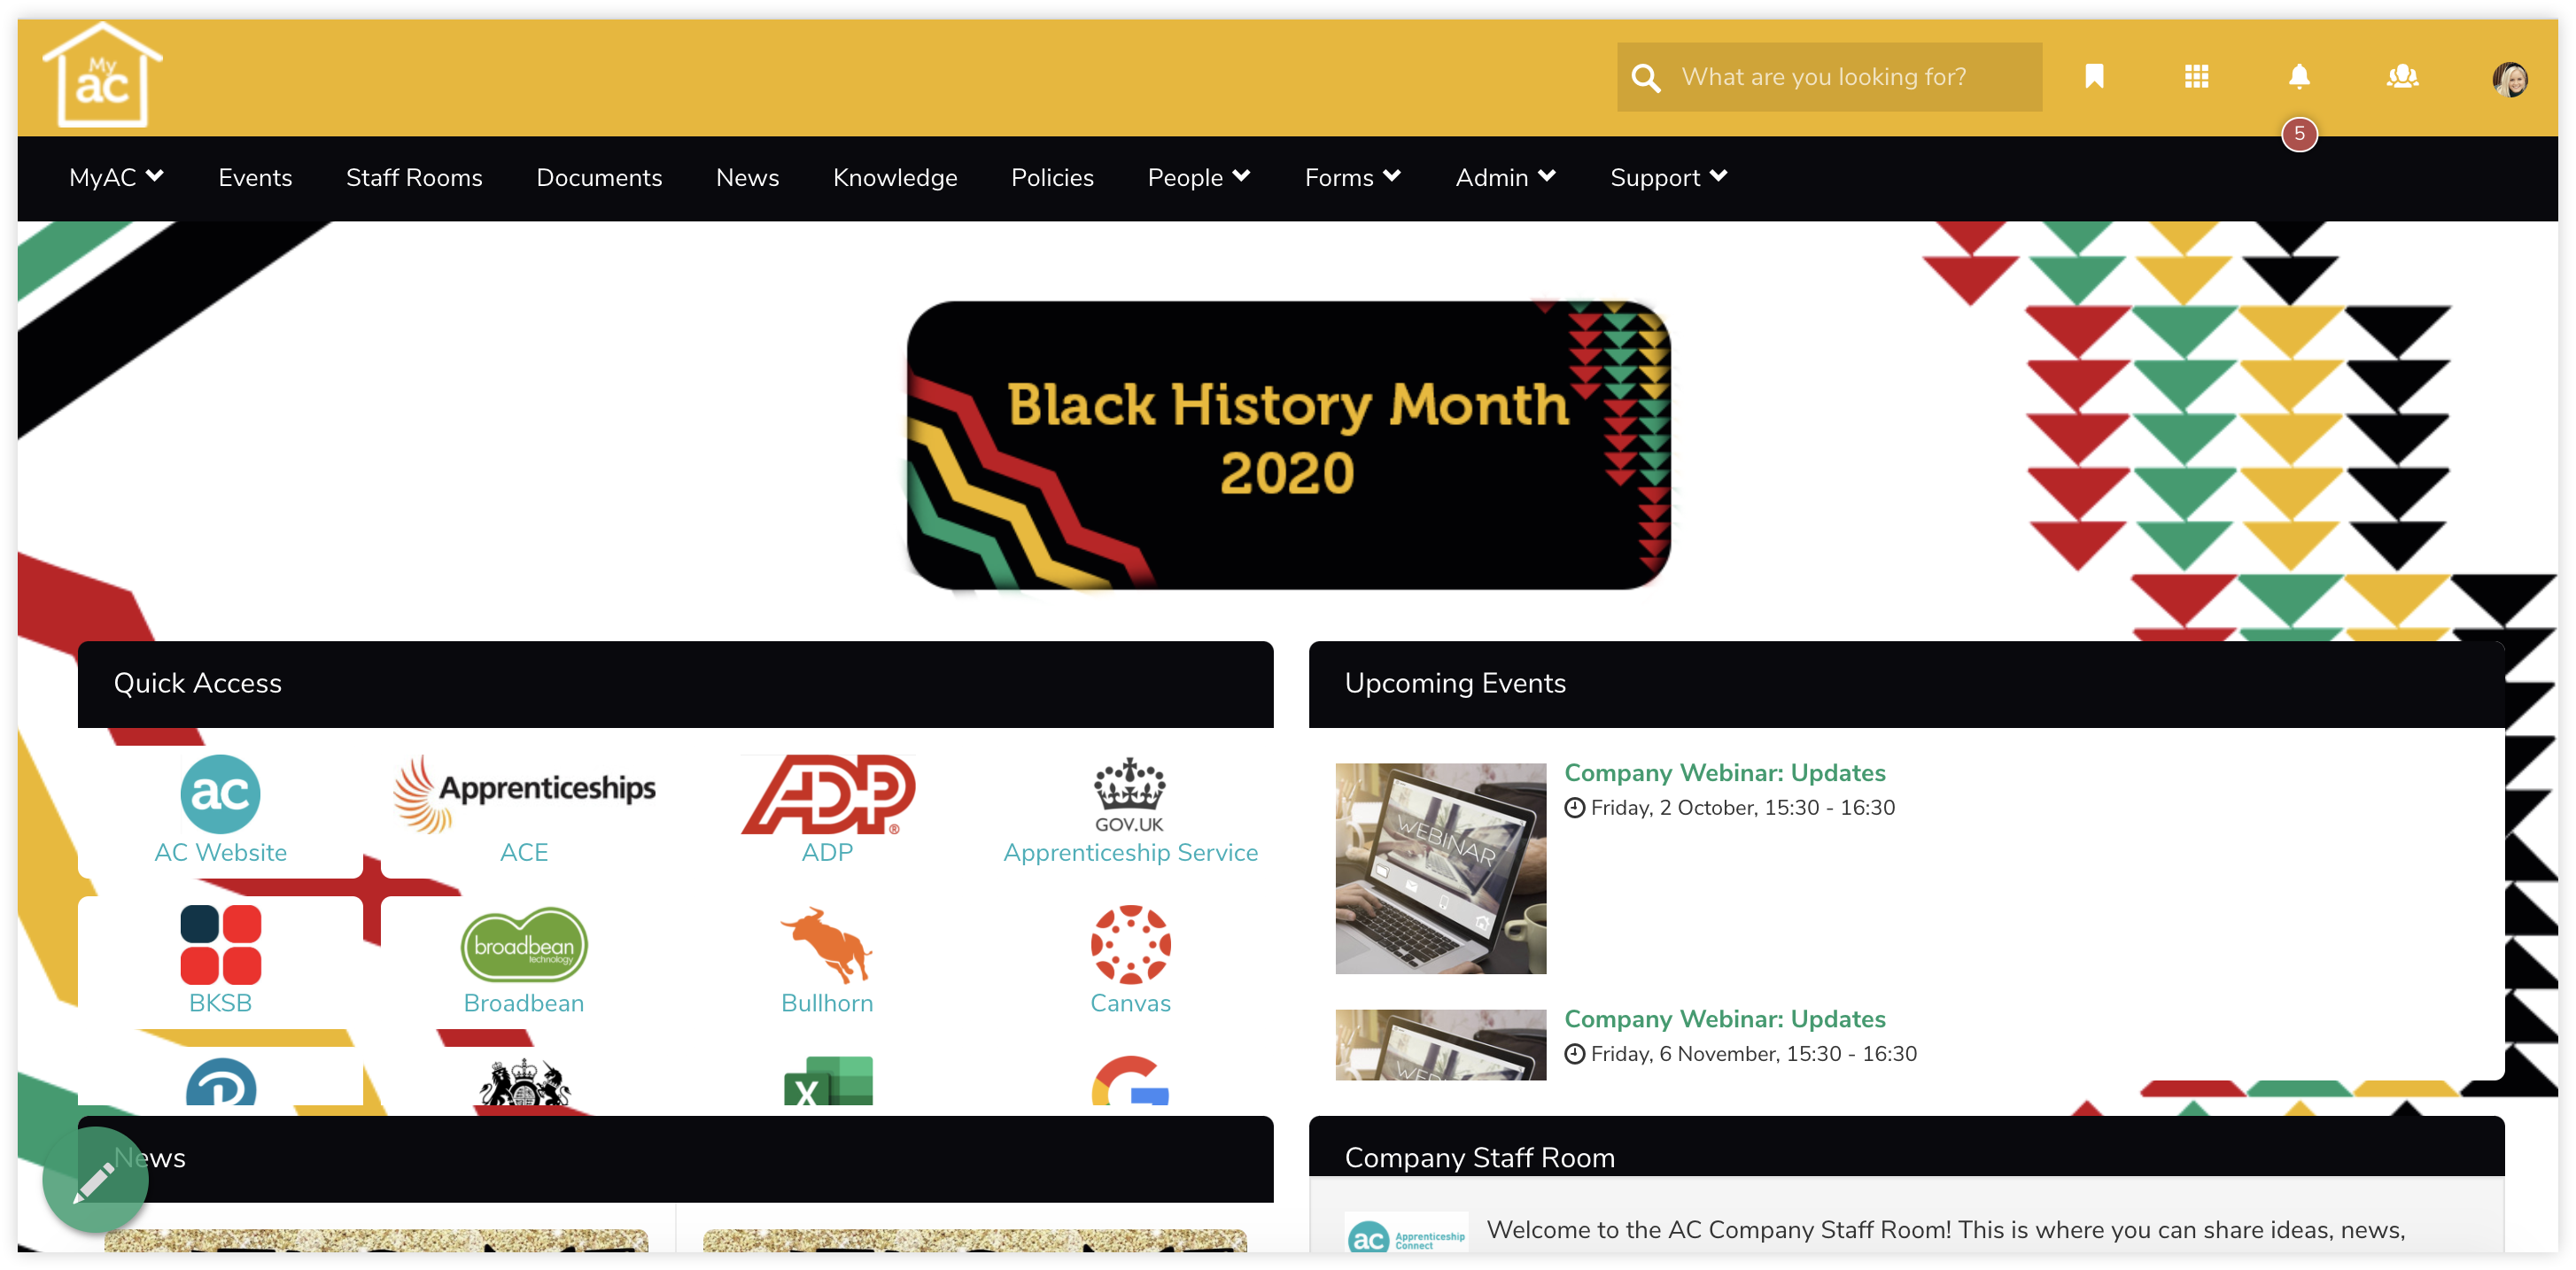 intranet-homepage-black-history-month-theme